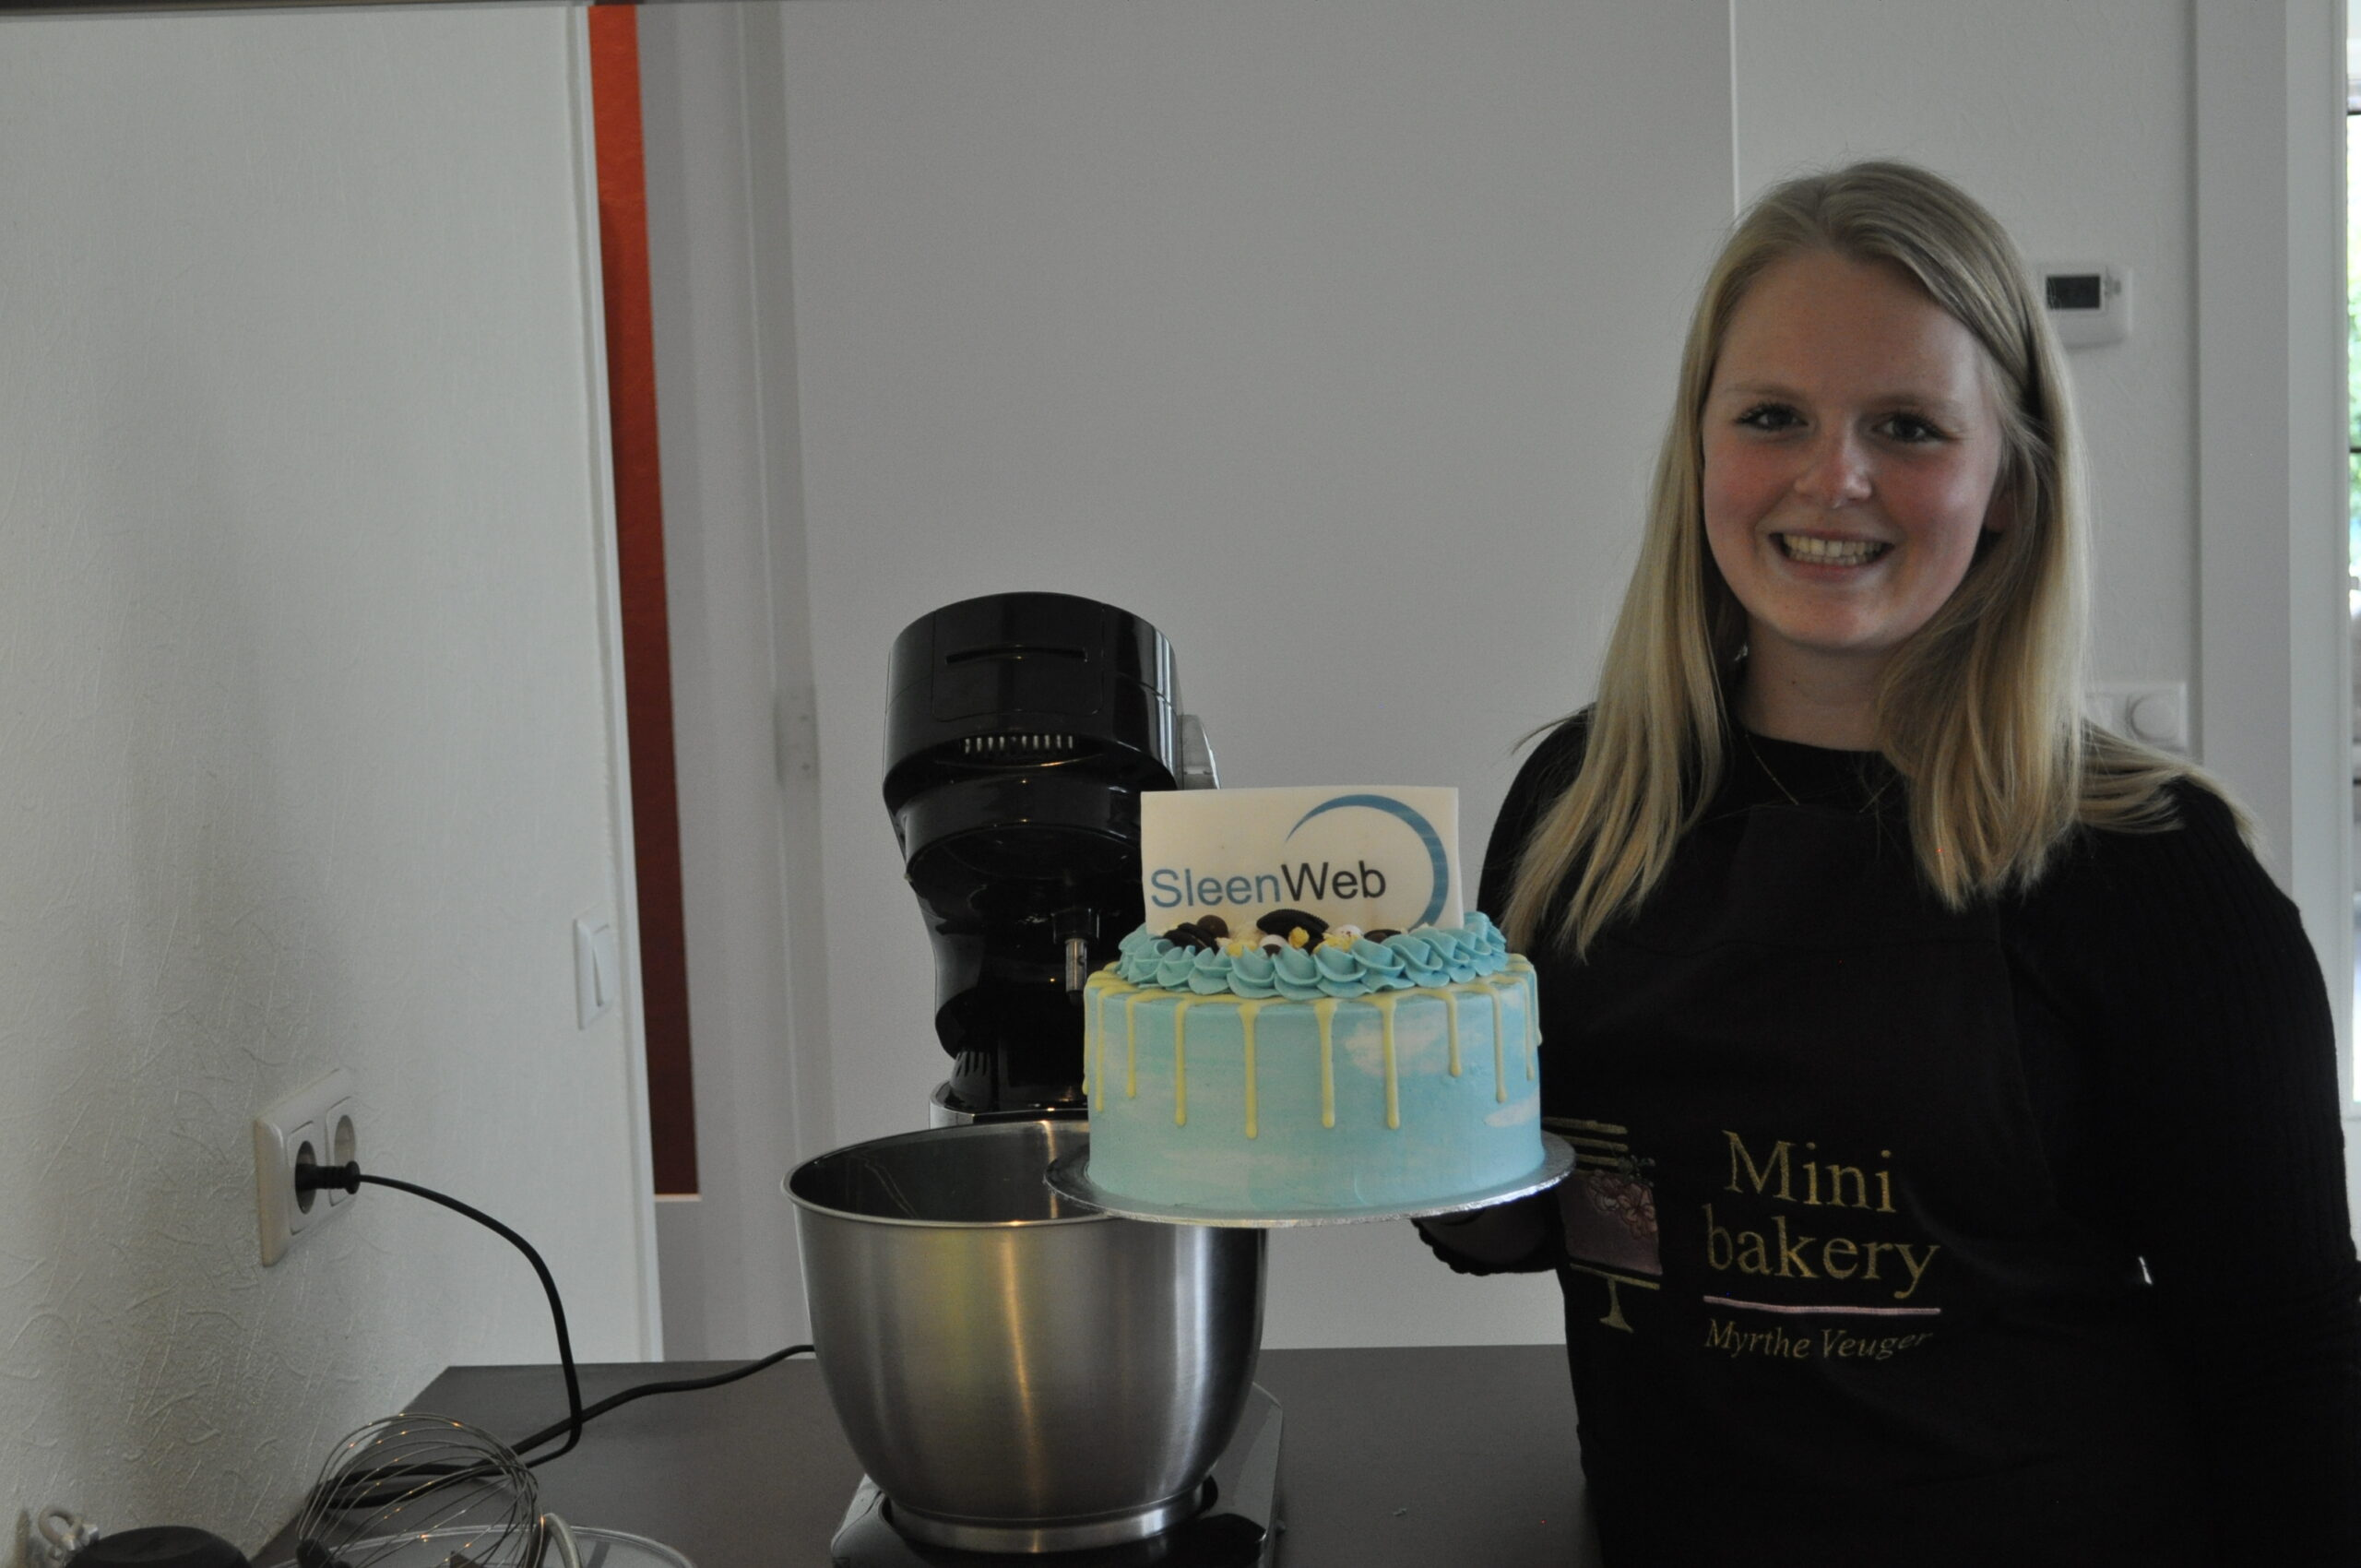 Mini Bakery Myrthe Veuger